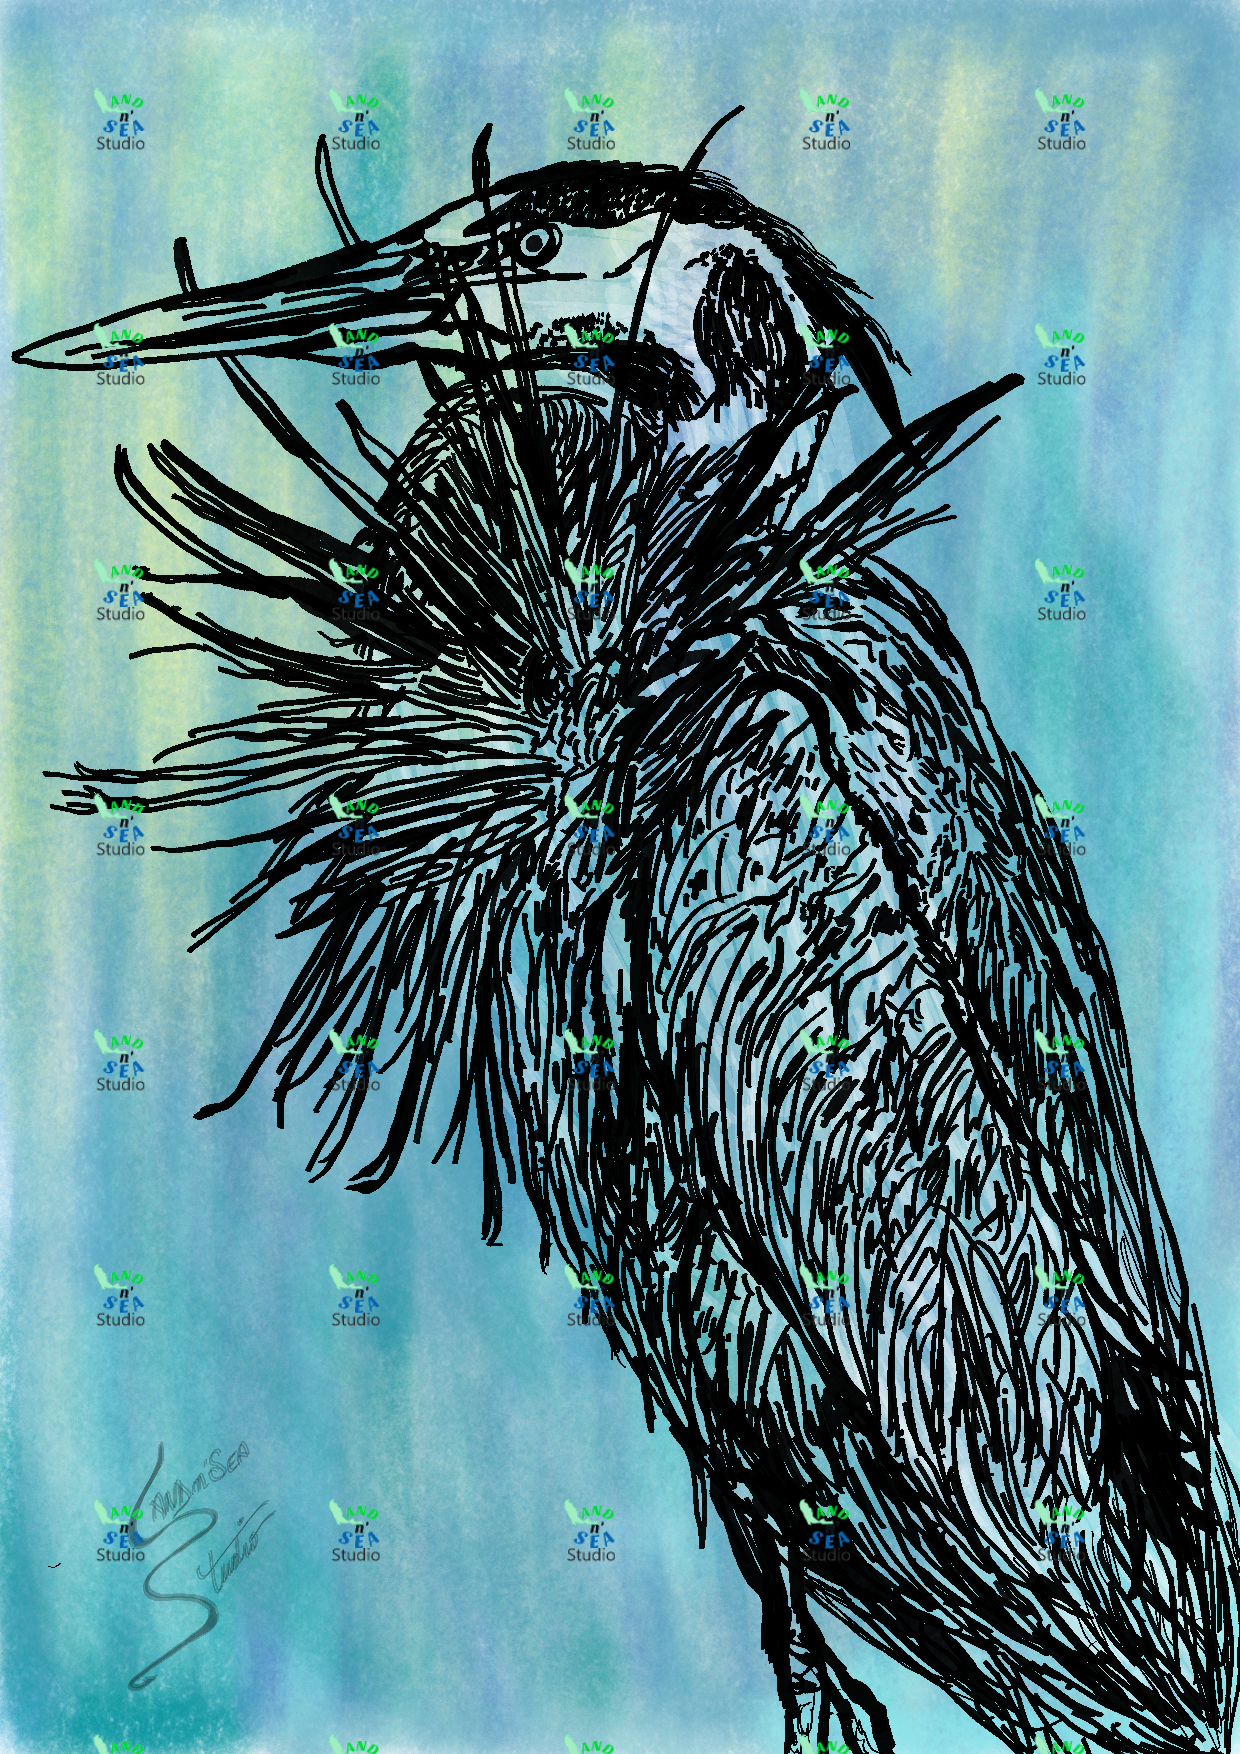 11x14 Print Face Mounted To Acrylic Of Original Watercolor And Ink Of Florida Great Blue Heron Found Around The Wat In 2020 11x14 Print Watercolor And Ink Beach Decor